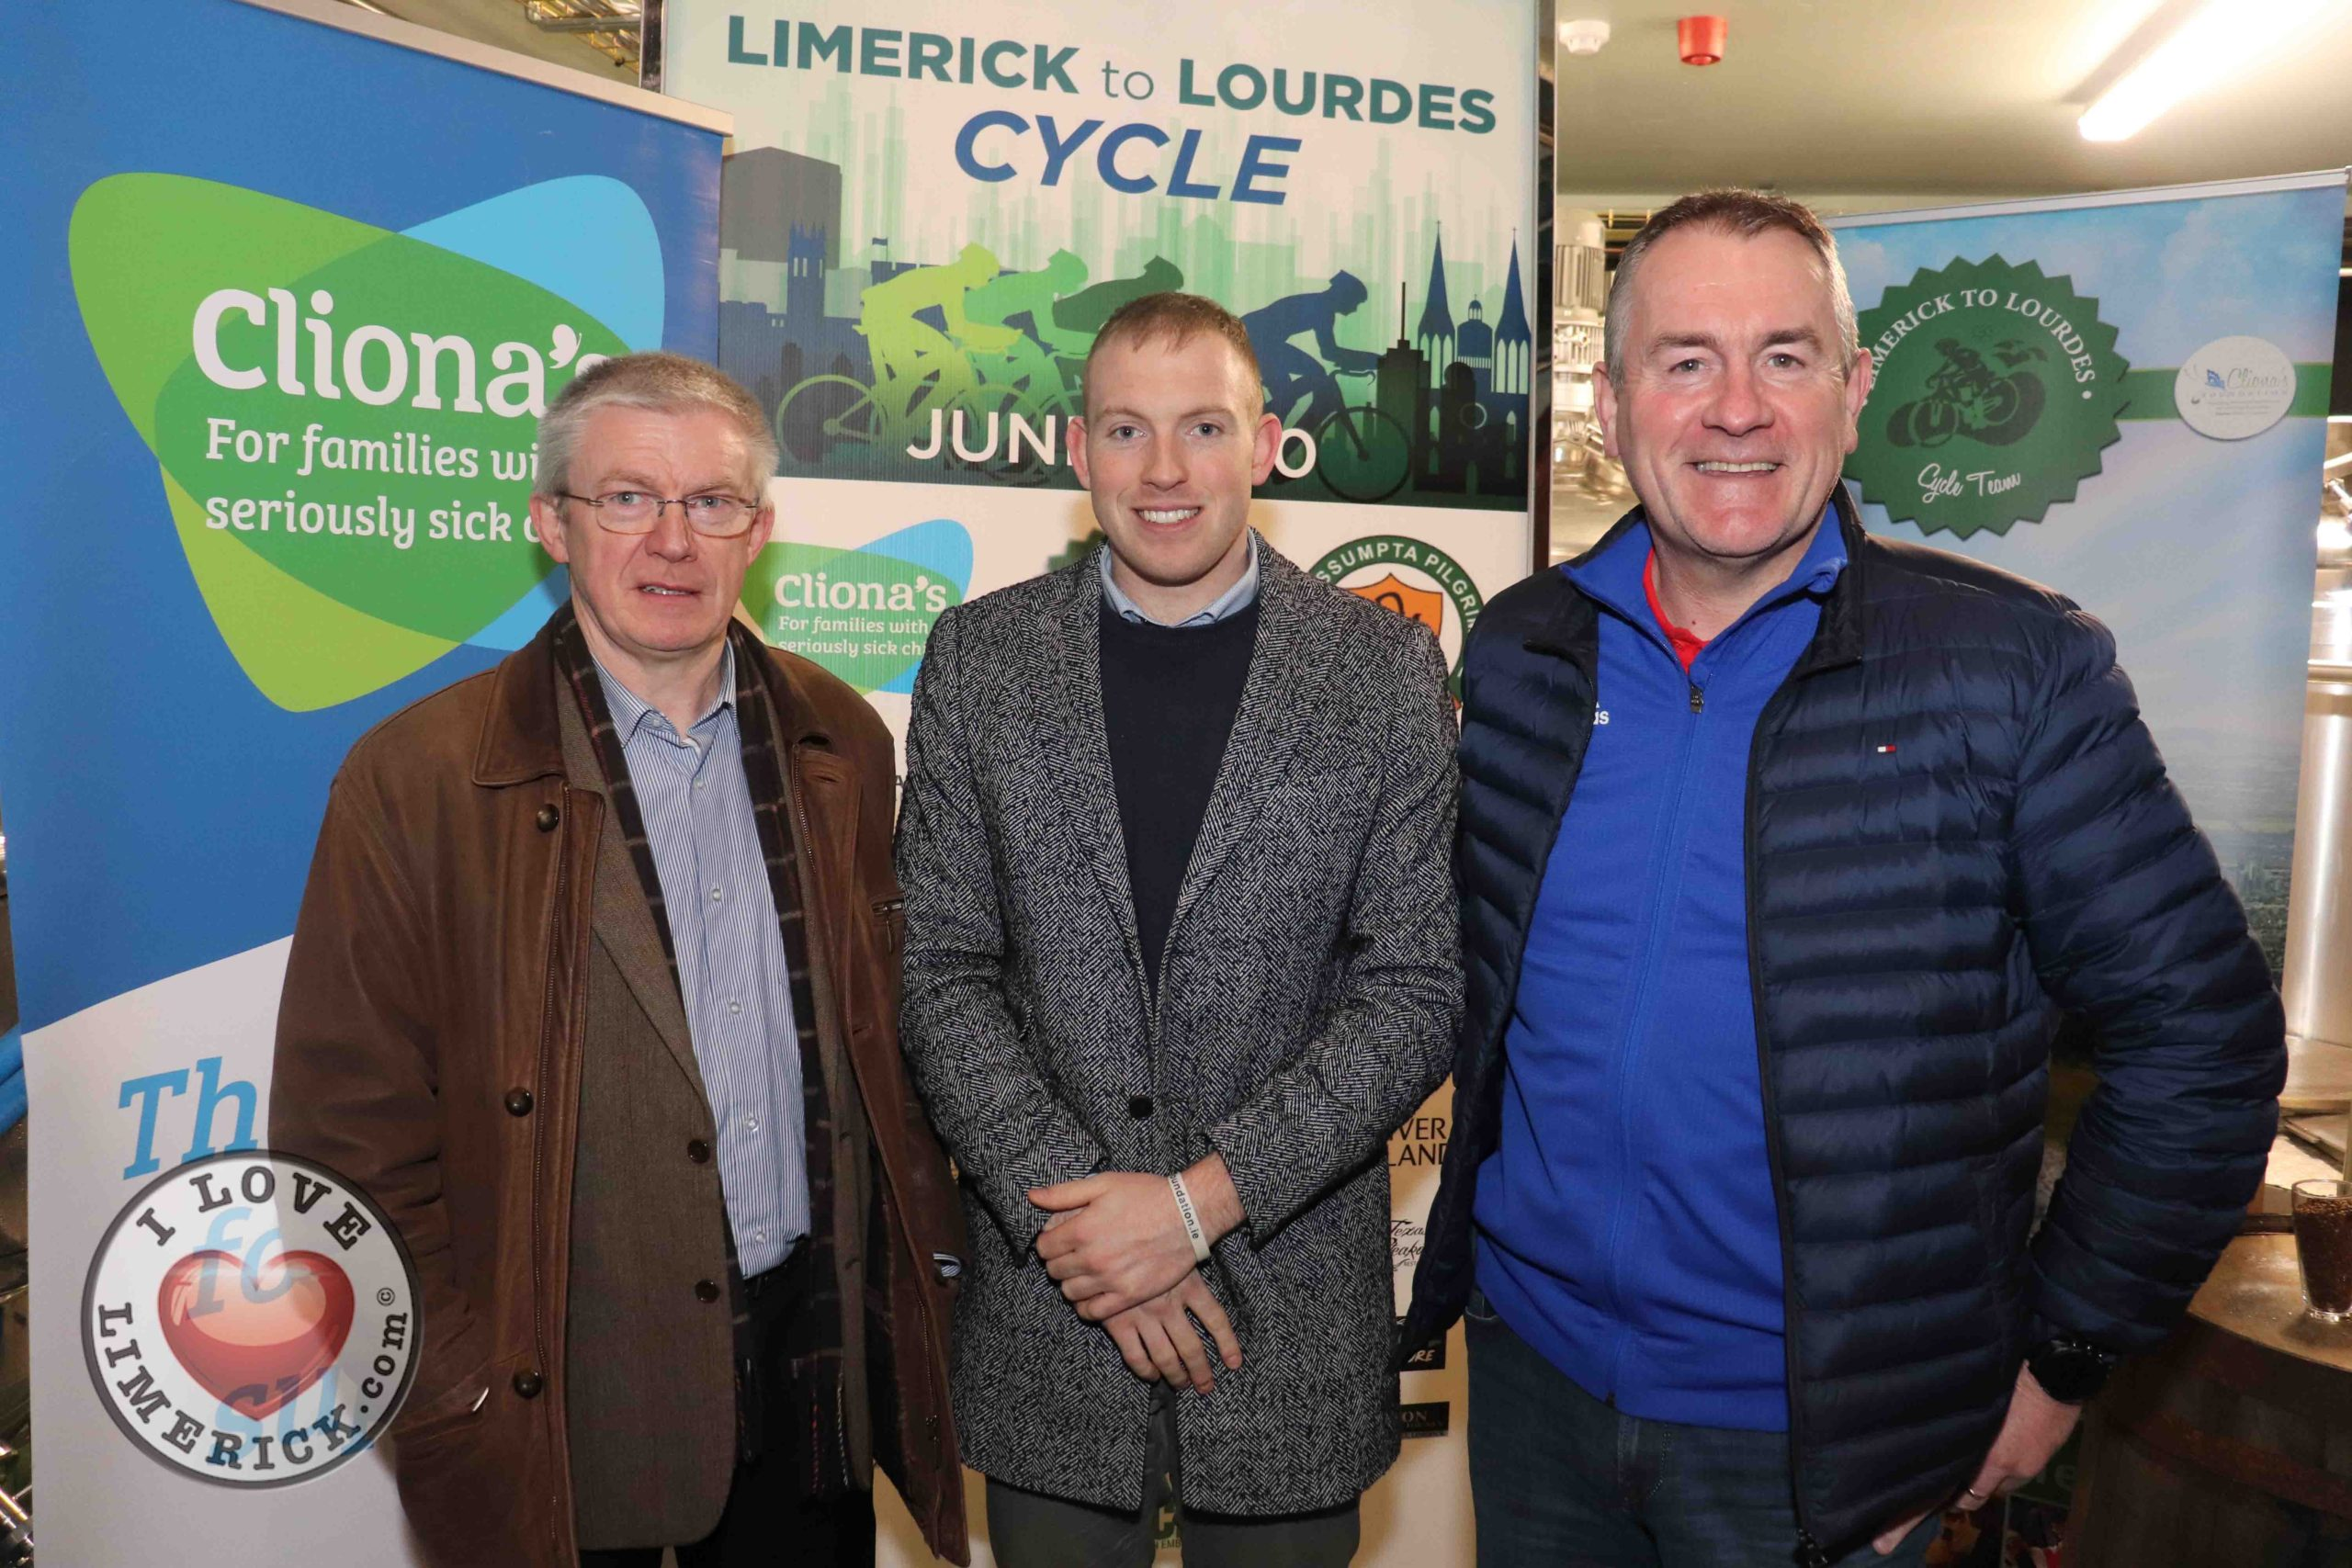 Limerick Lourdes Charity Cycle